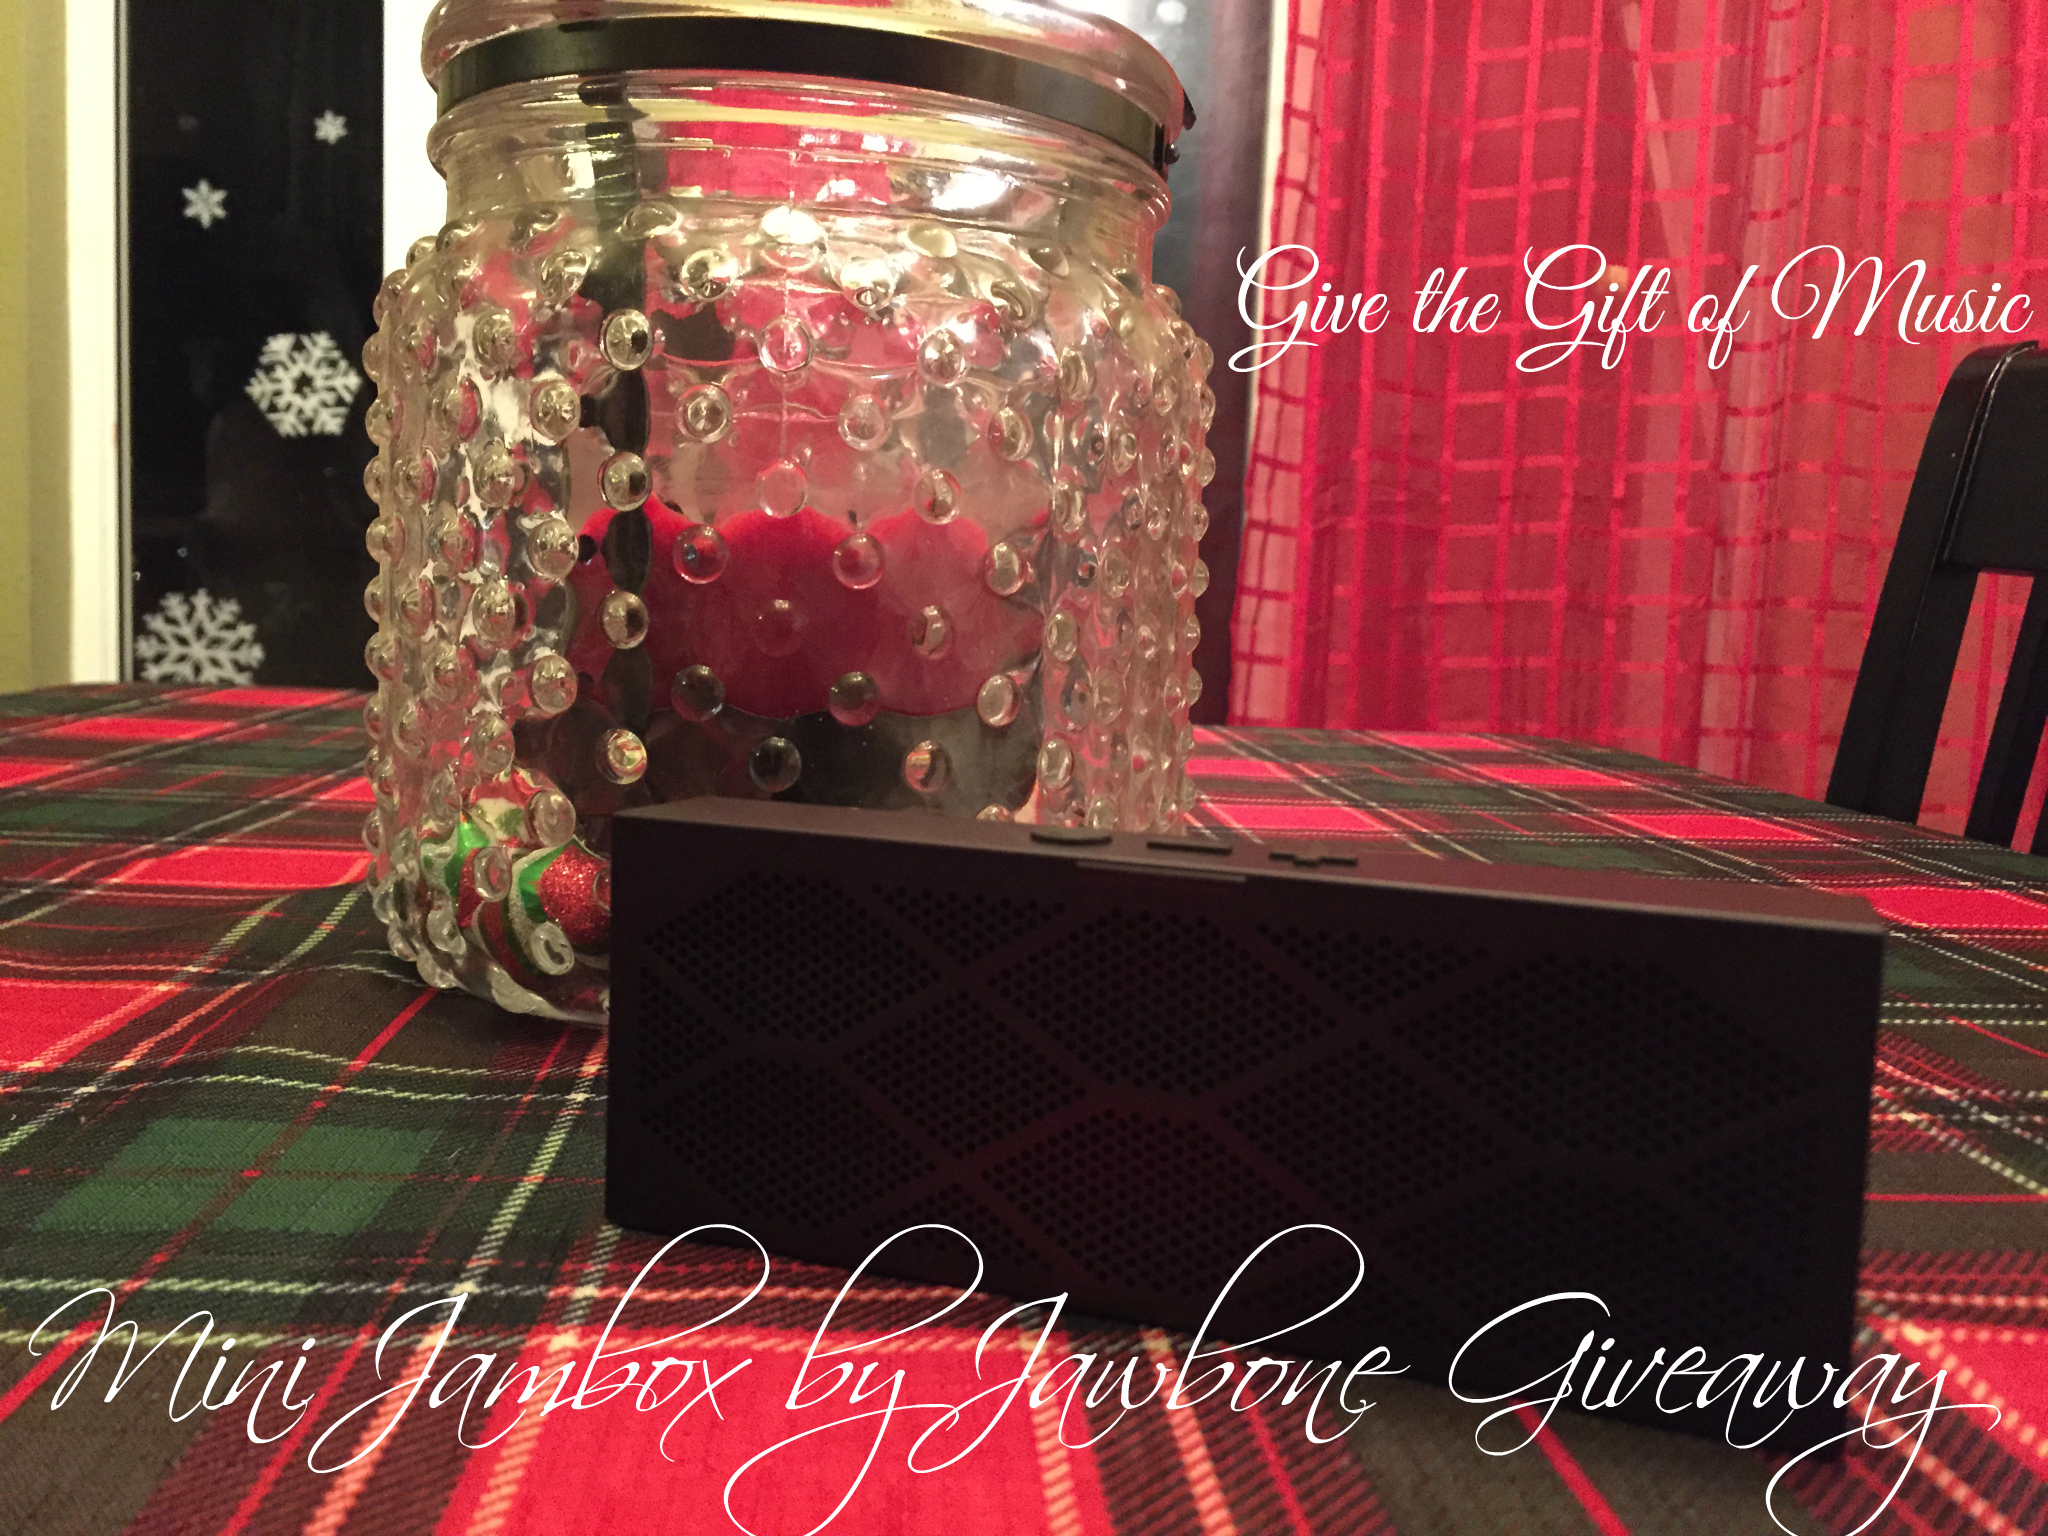 Give the Gift of Music with Mini Jambox by Jawbone #Giveaway